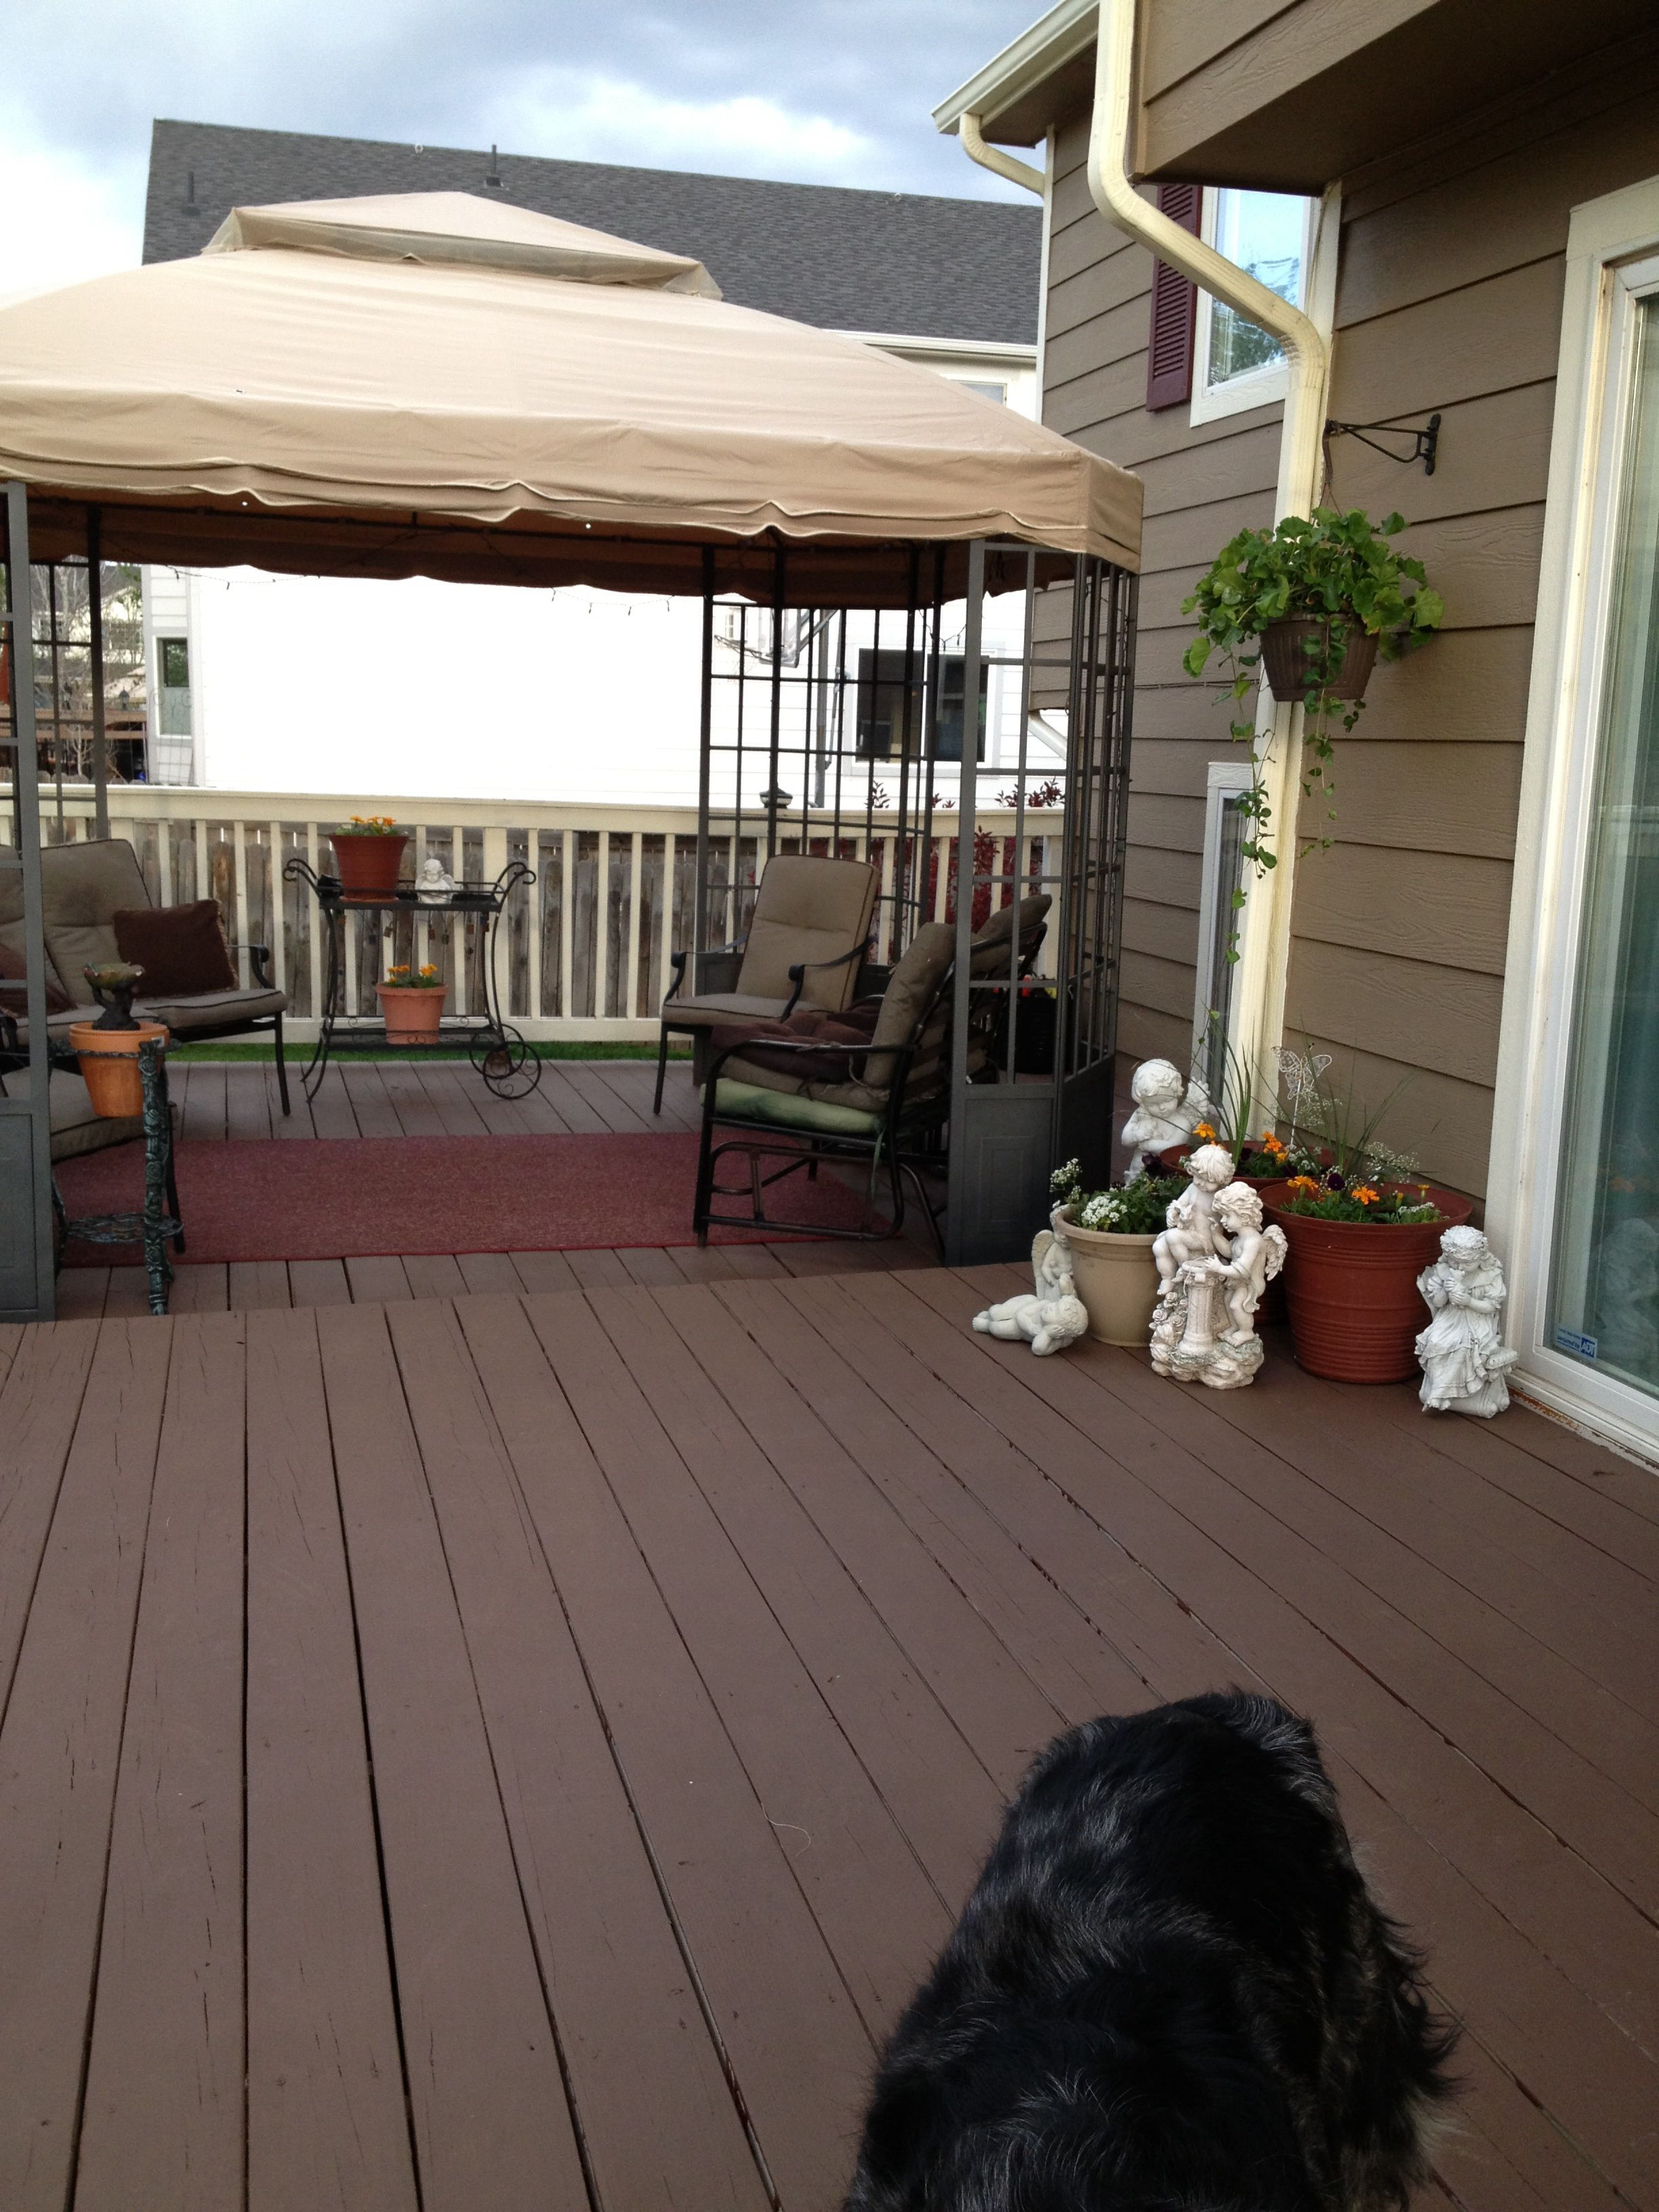 Pin Behr Deck And Fence Stain Ajilbabcom Portal on Pinterest